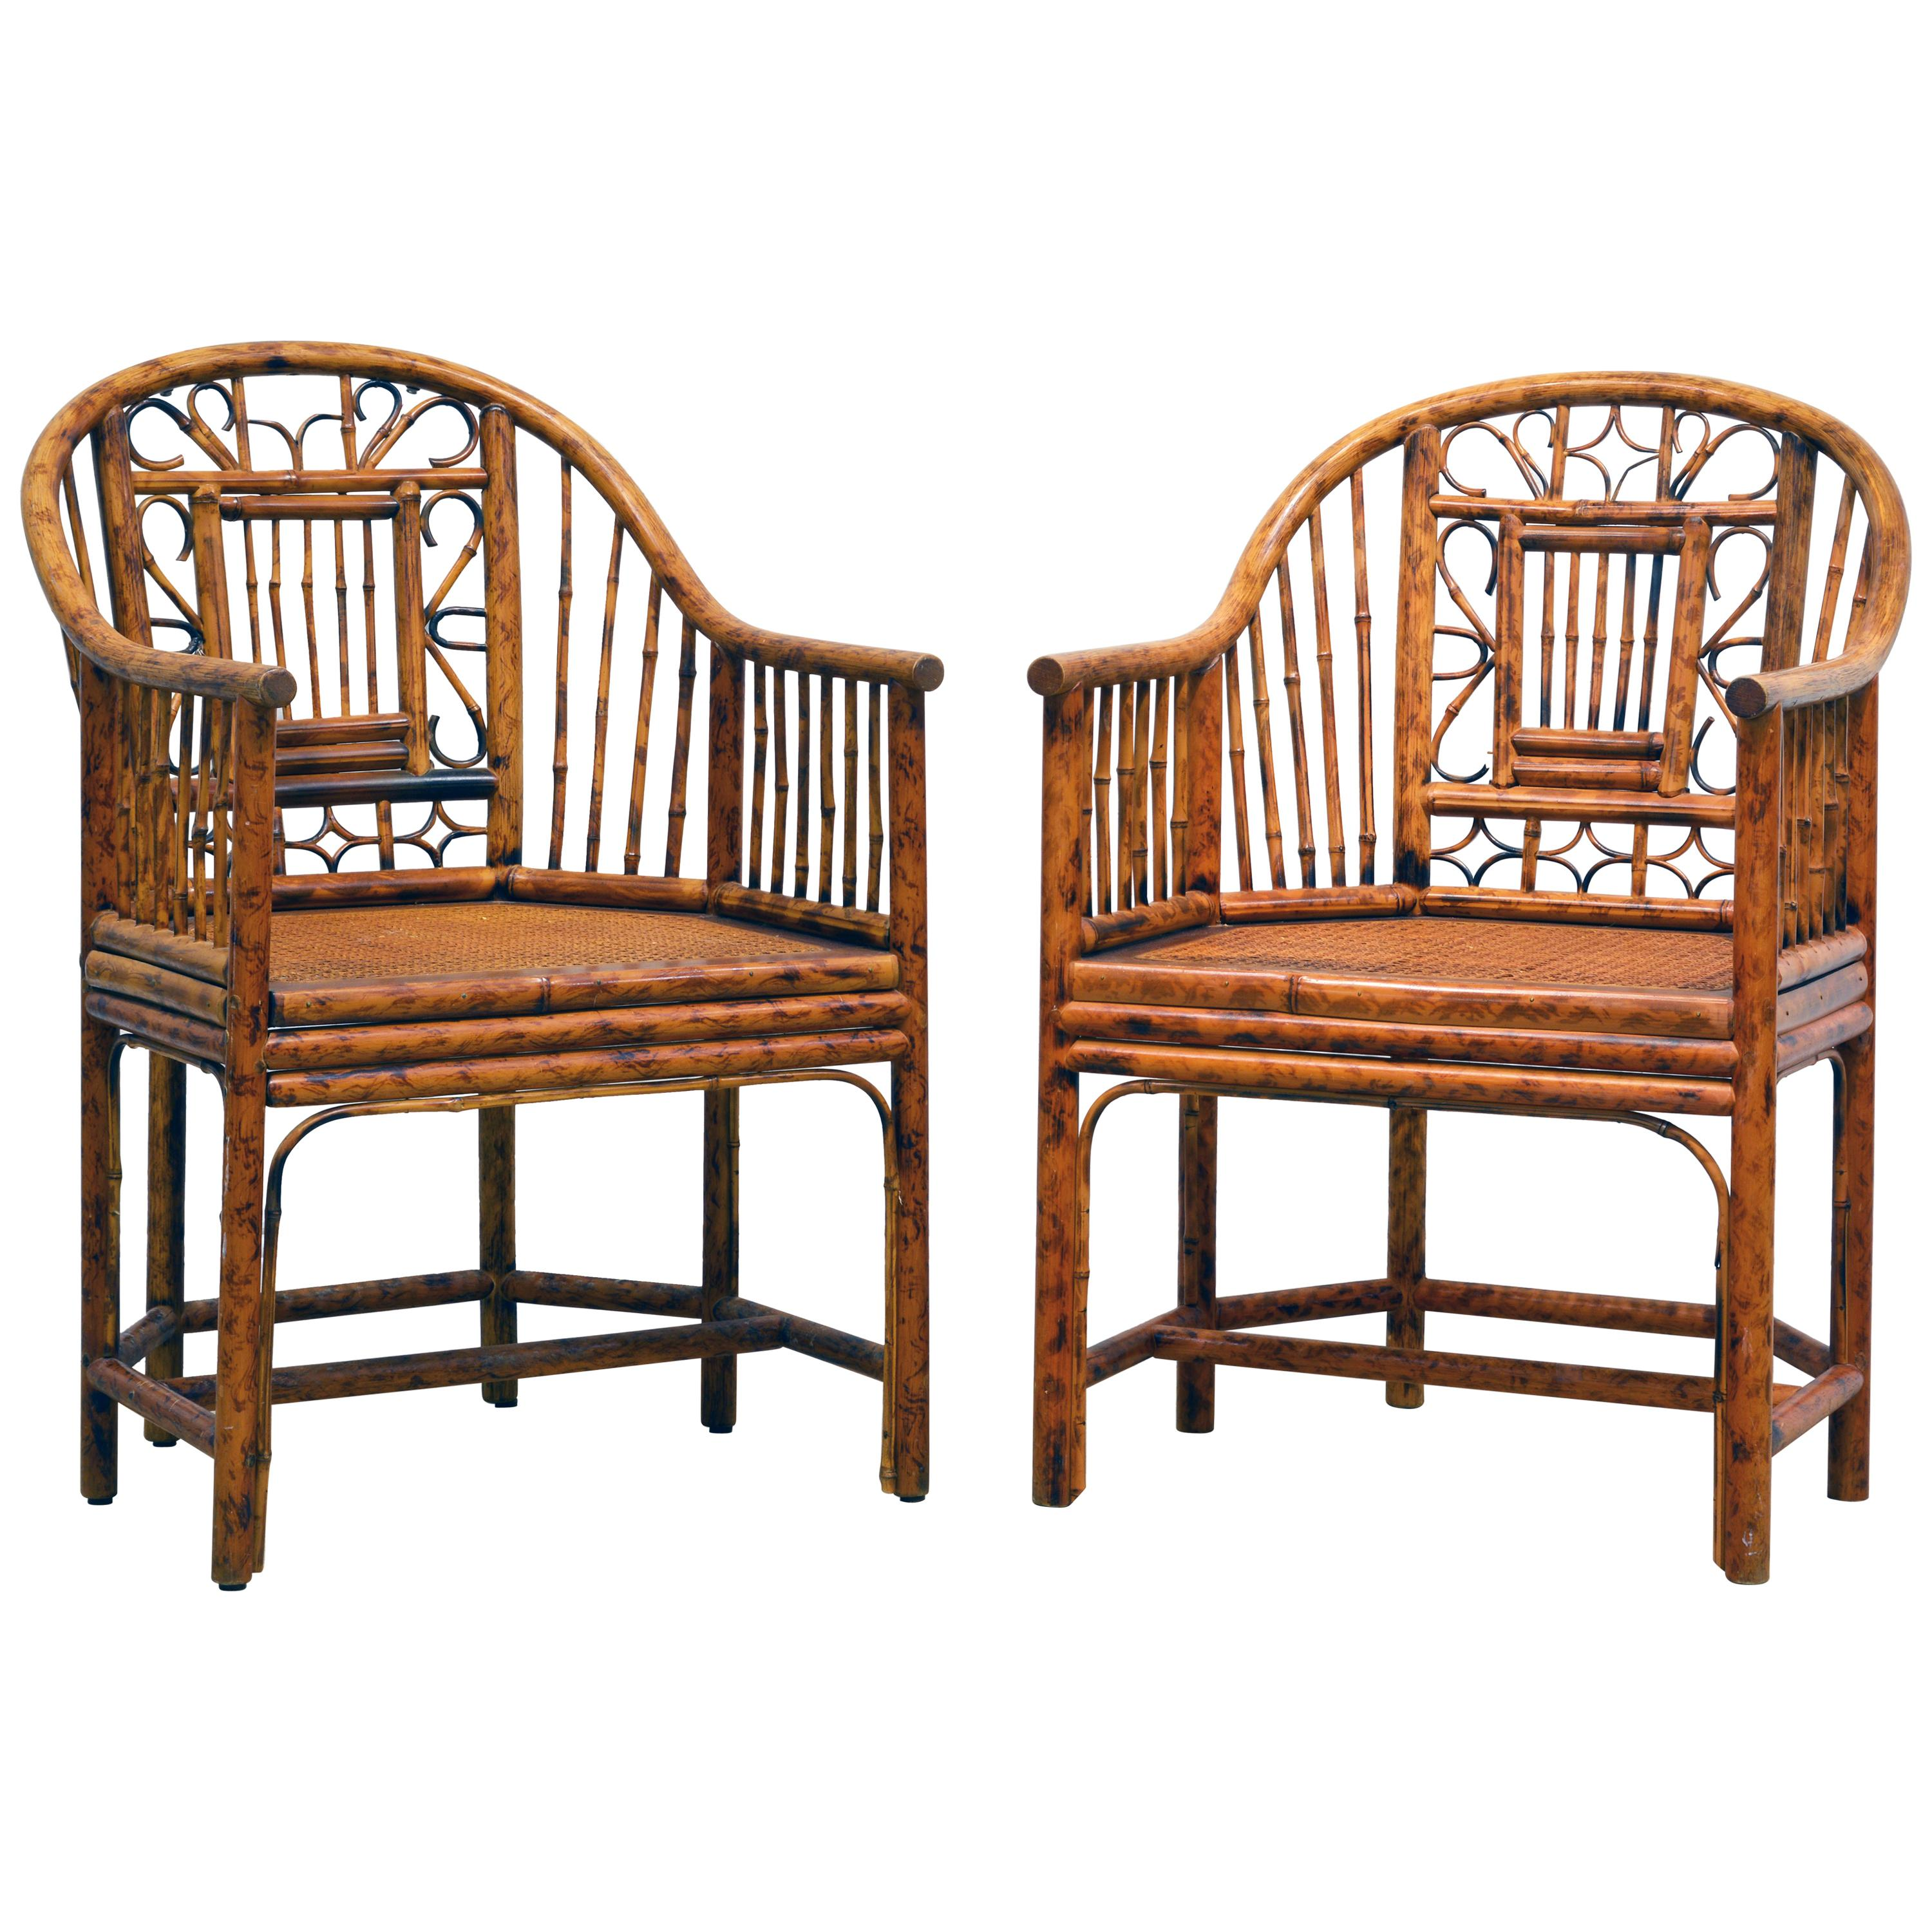 Strange Chinoiserie Armchairs 27 For Sale At 1Stdibs Machost Co Dining Chair Design Ideas Machostcouk